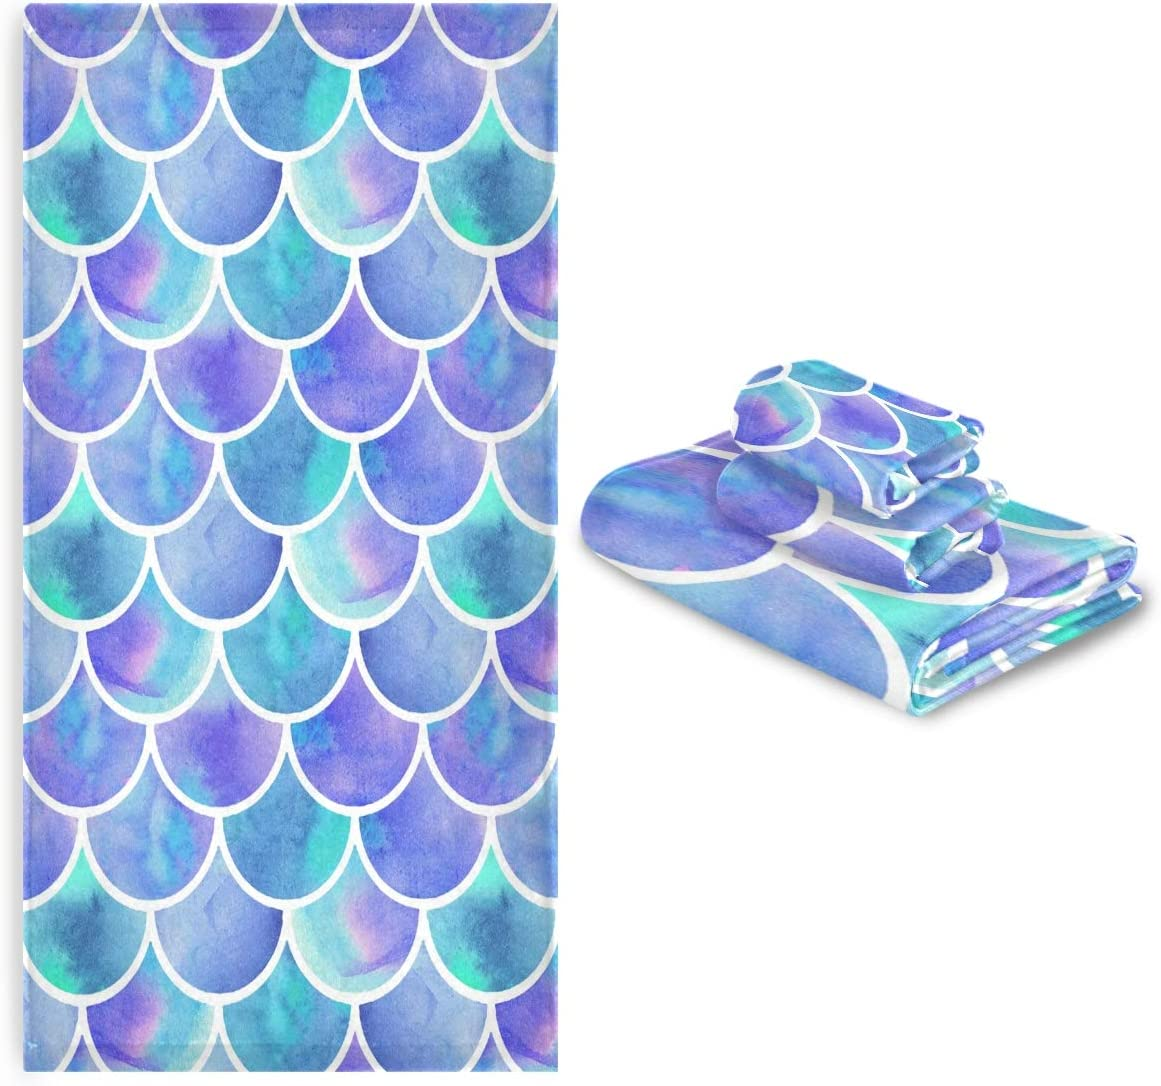 Vdsrup Mermaid Scales Towels Set Clearance SALE! Limited time! of Fish 3 Magic Towe Scale OFFicial store Hand